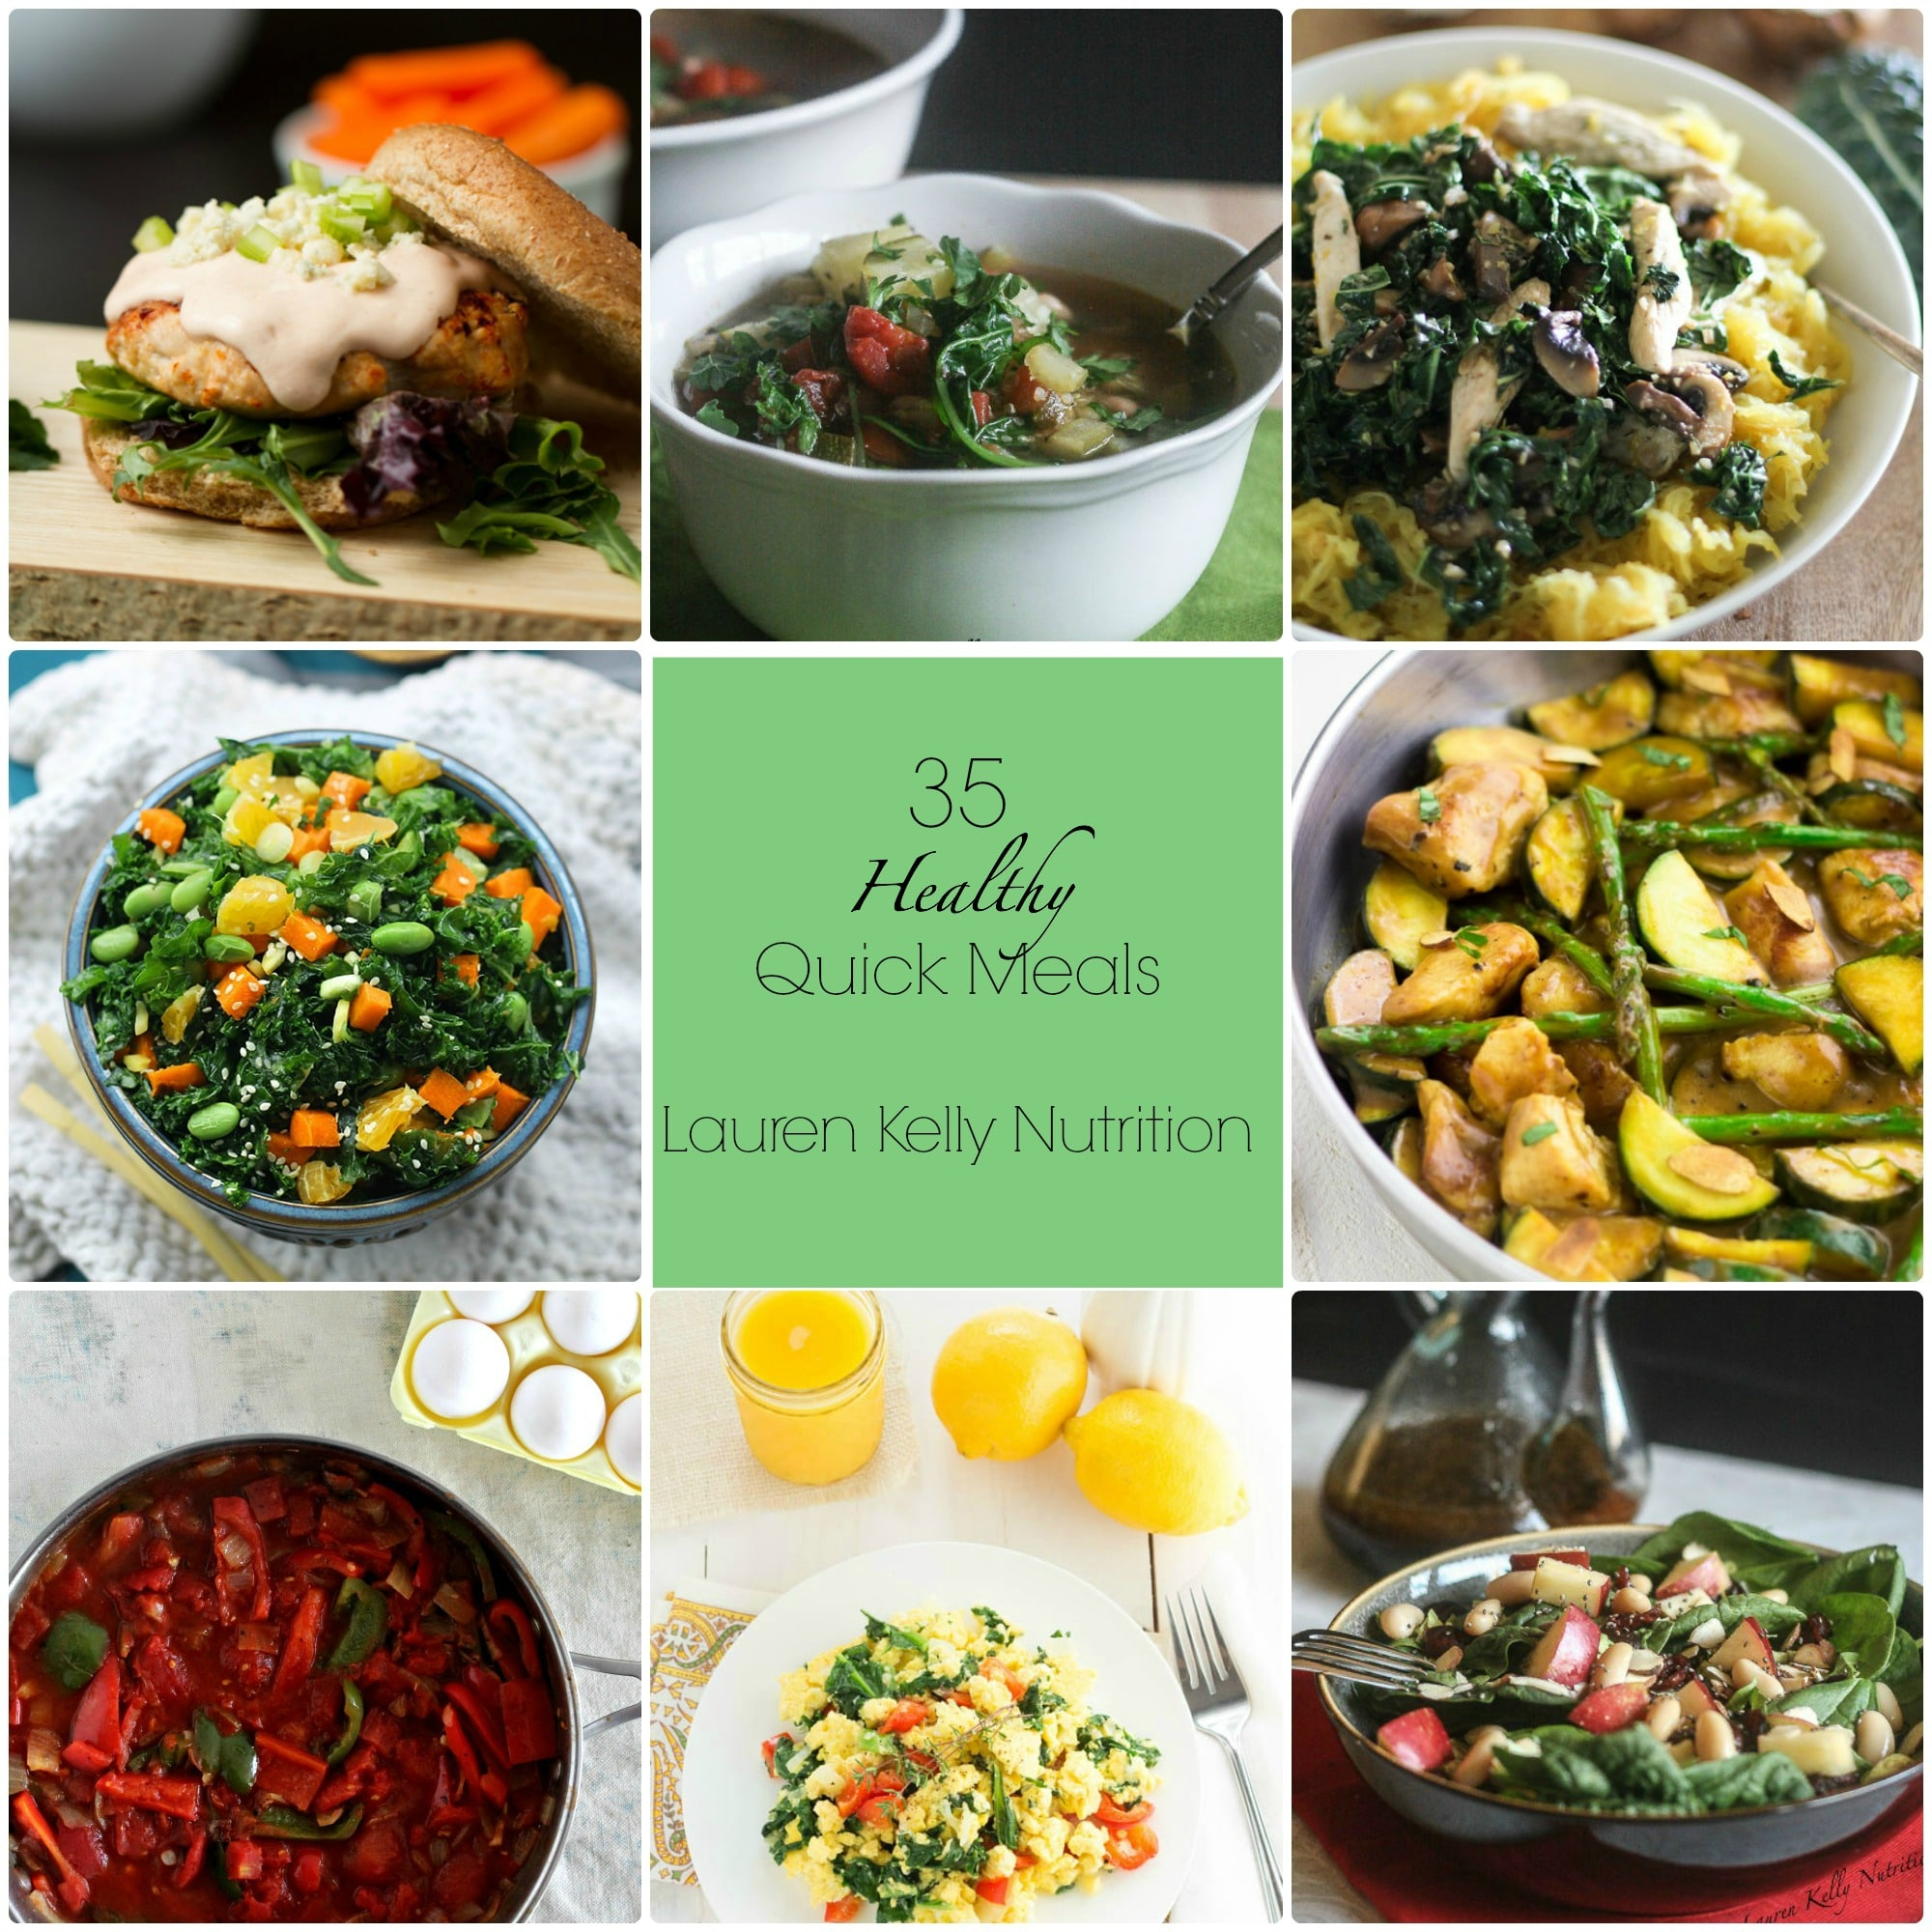 35 Healthy Quick Meals from Lauren Kelly Nutrition